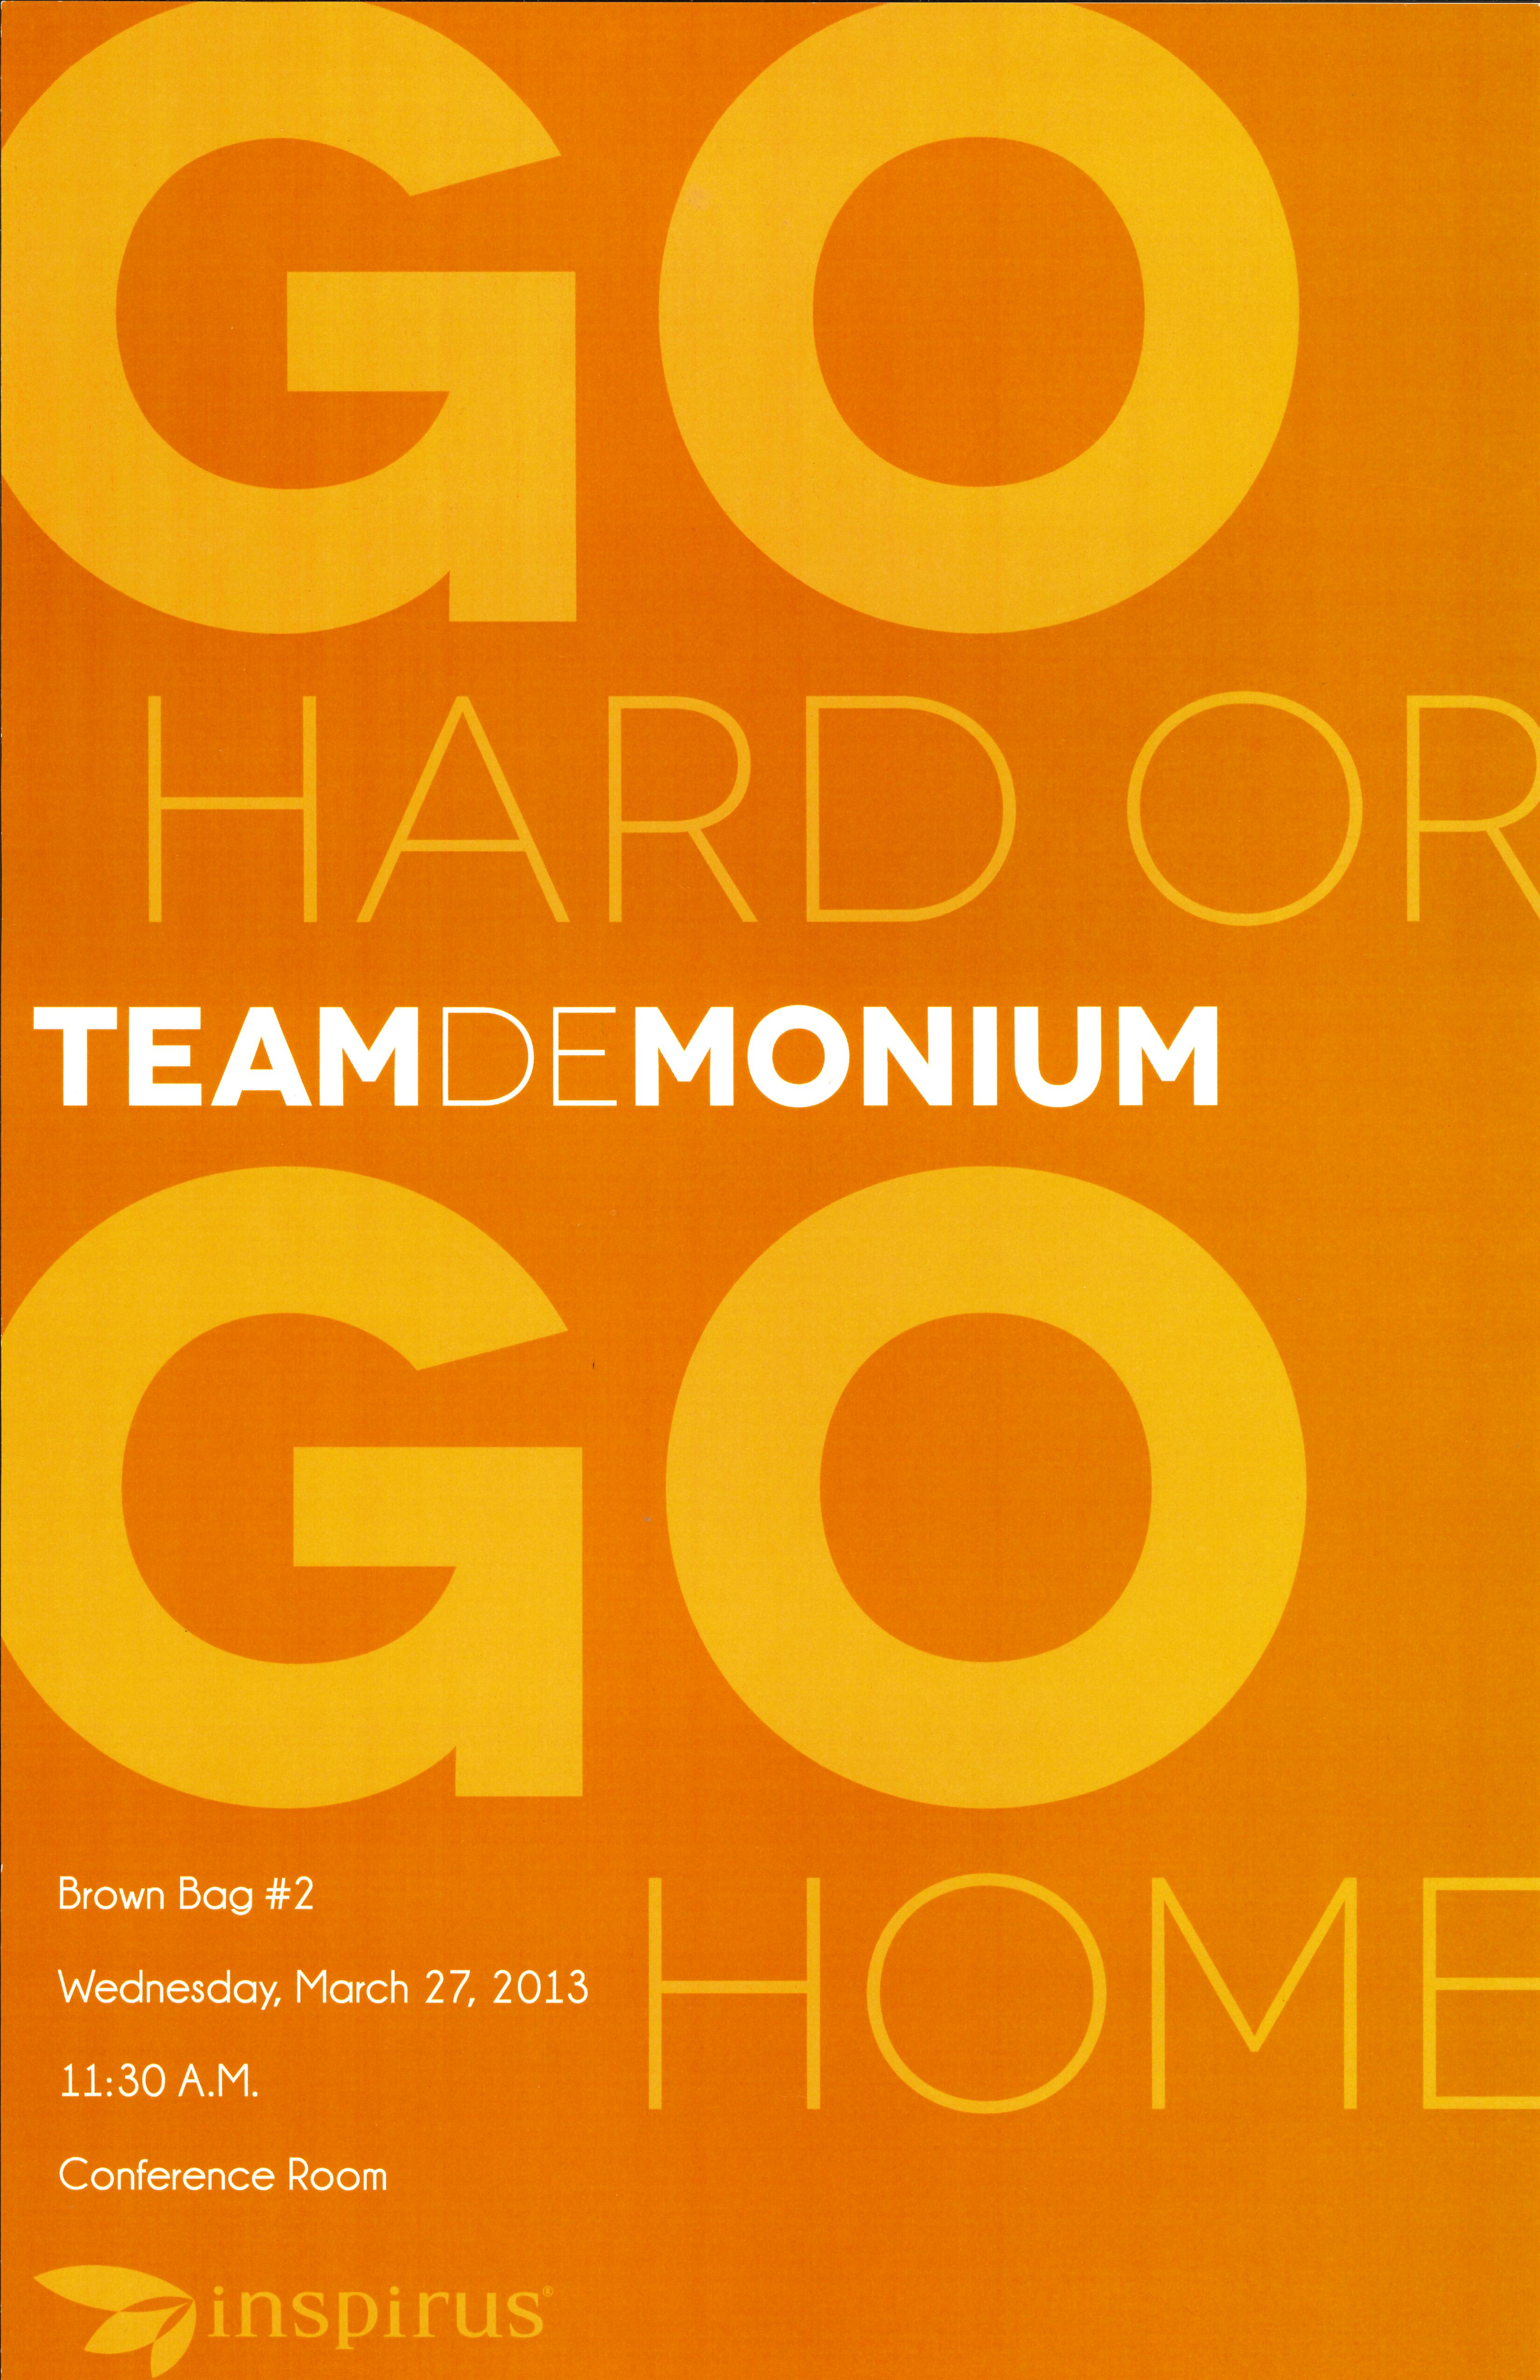 poster for an event called TeamDeMonium